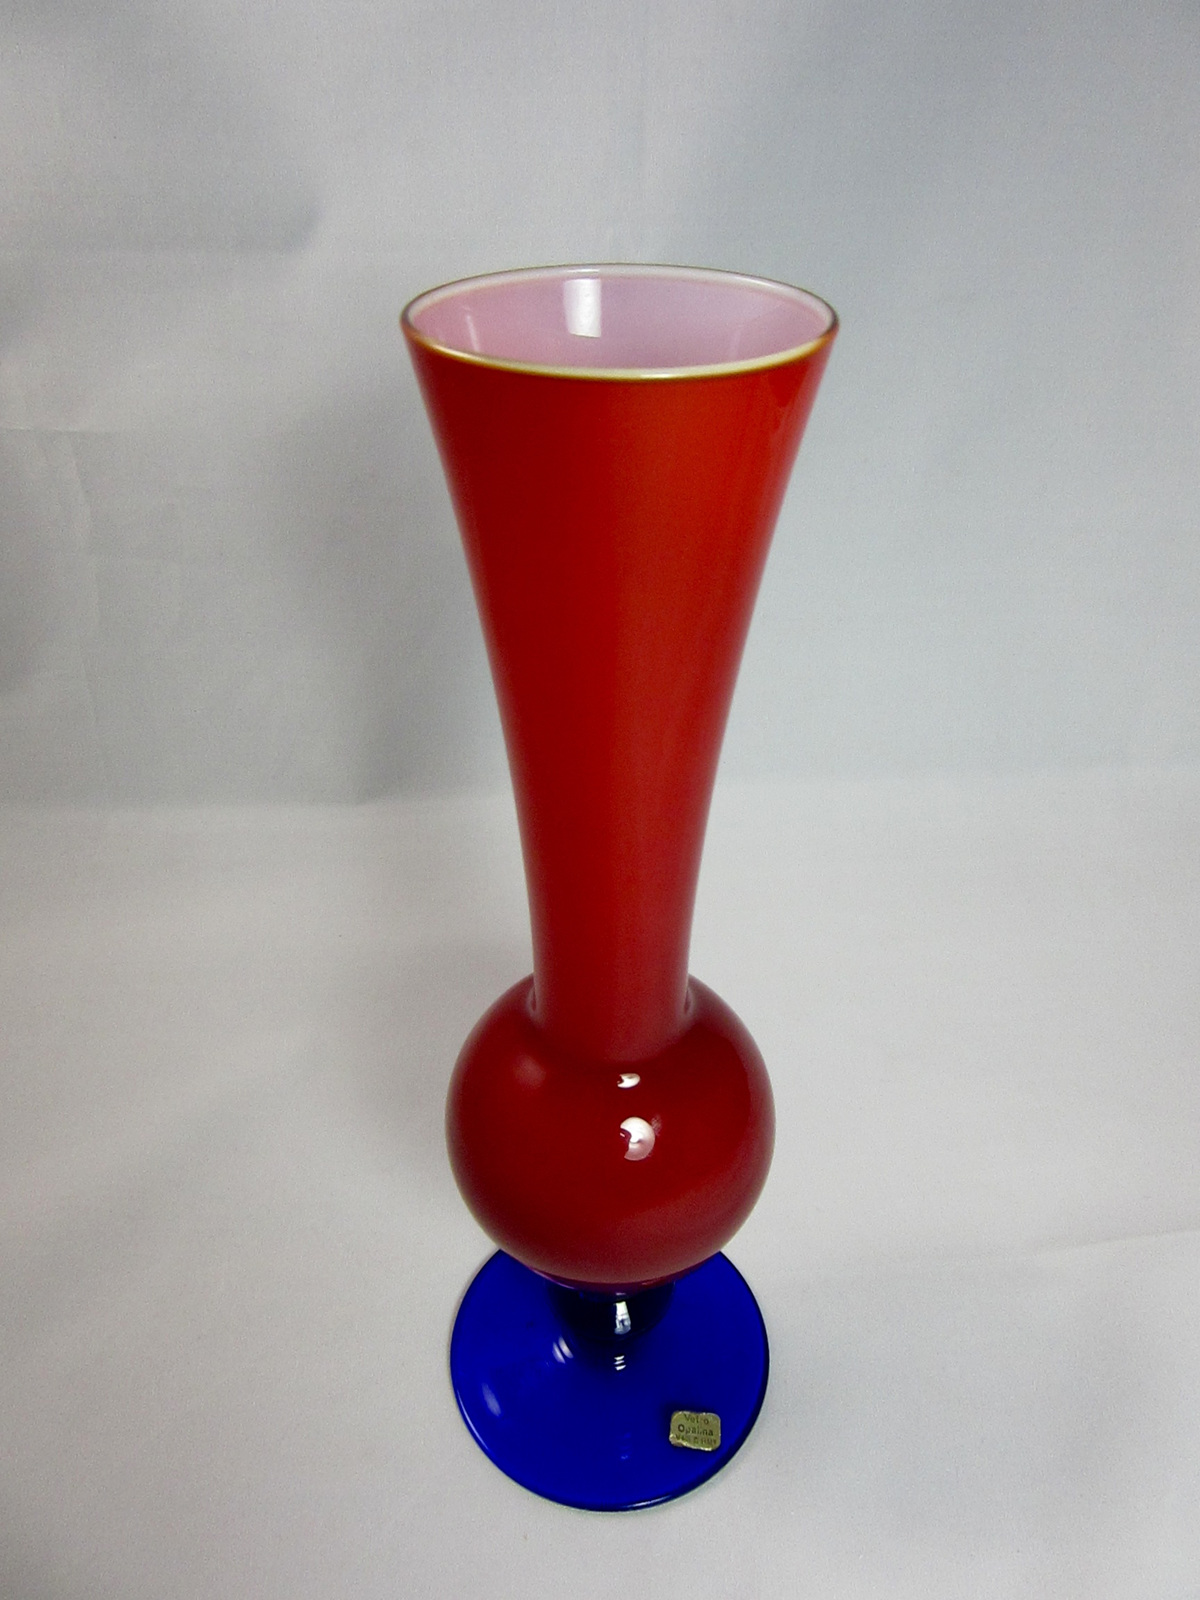 Vintage italian opaline glass vase in red and blue vintage colour reviewsmspy